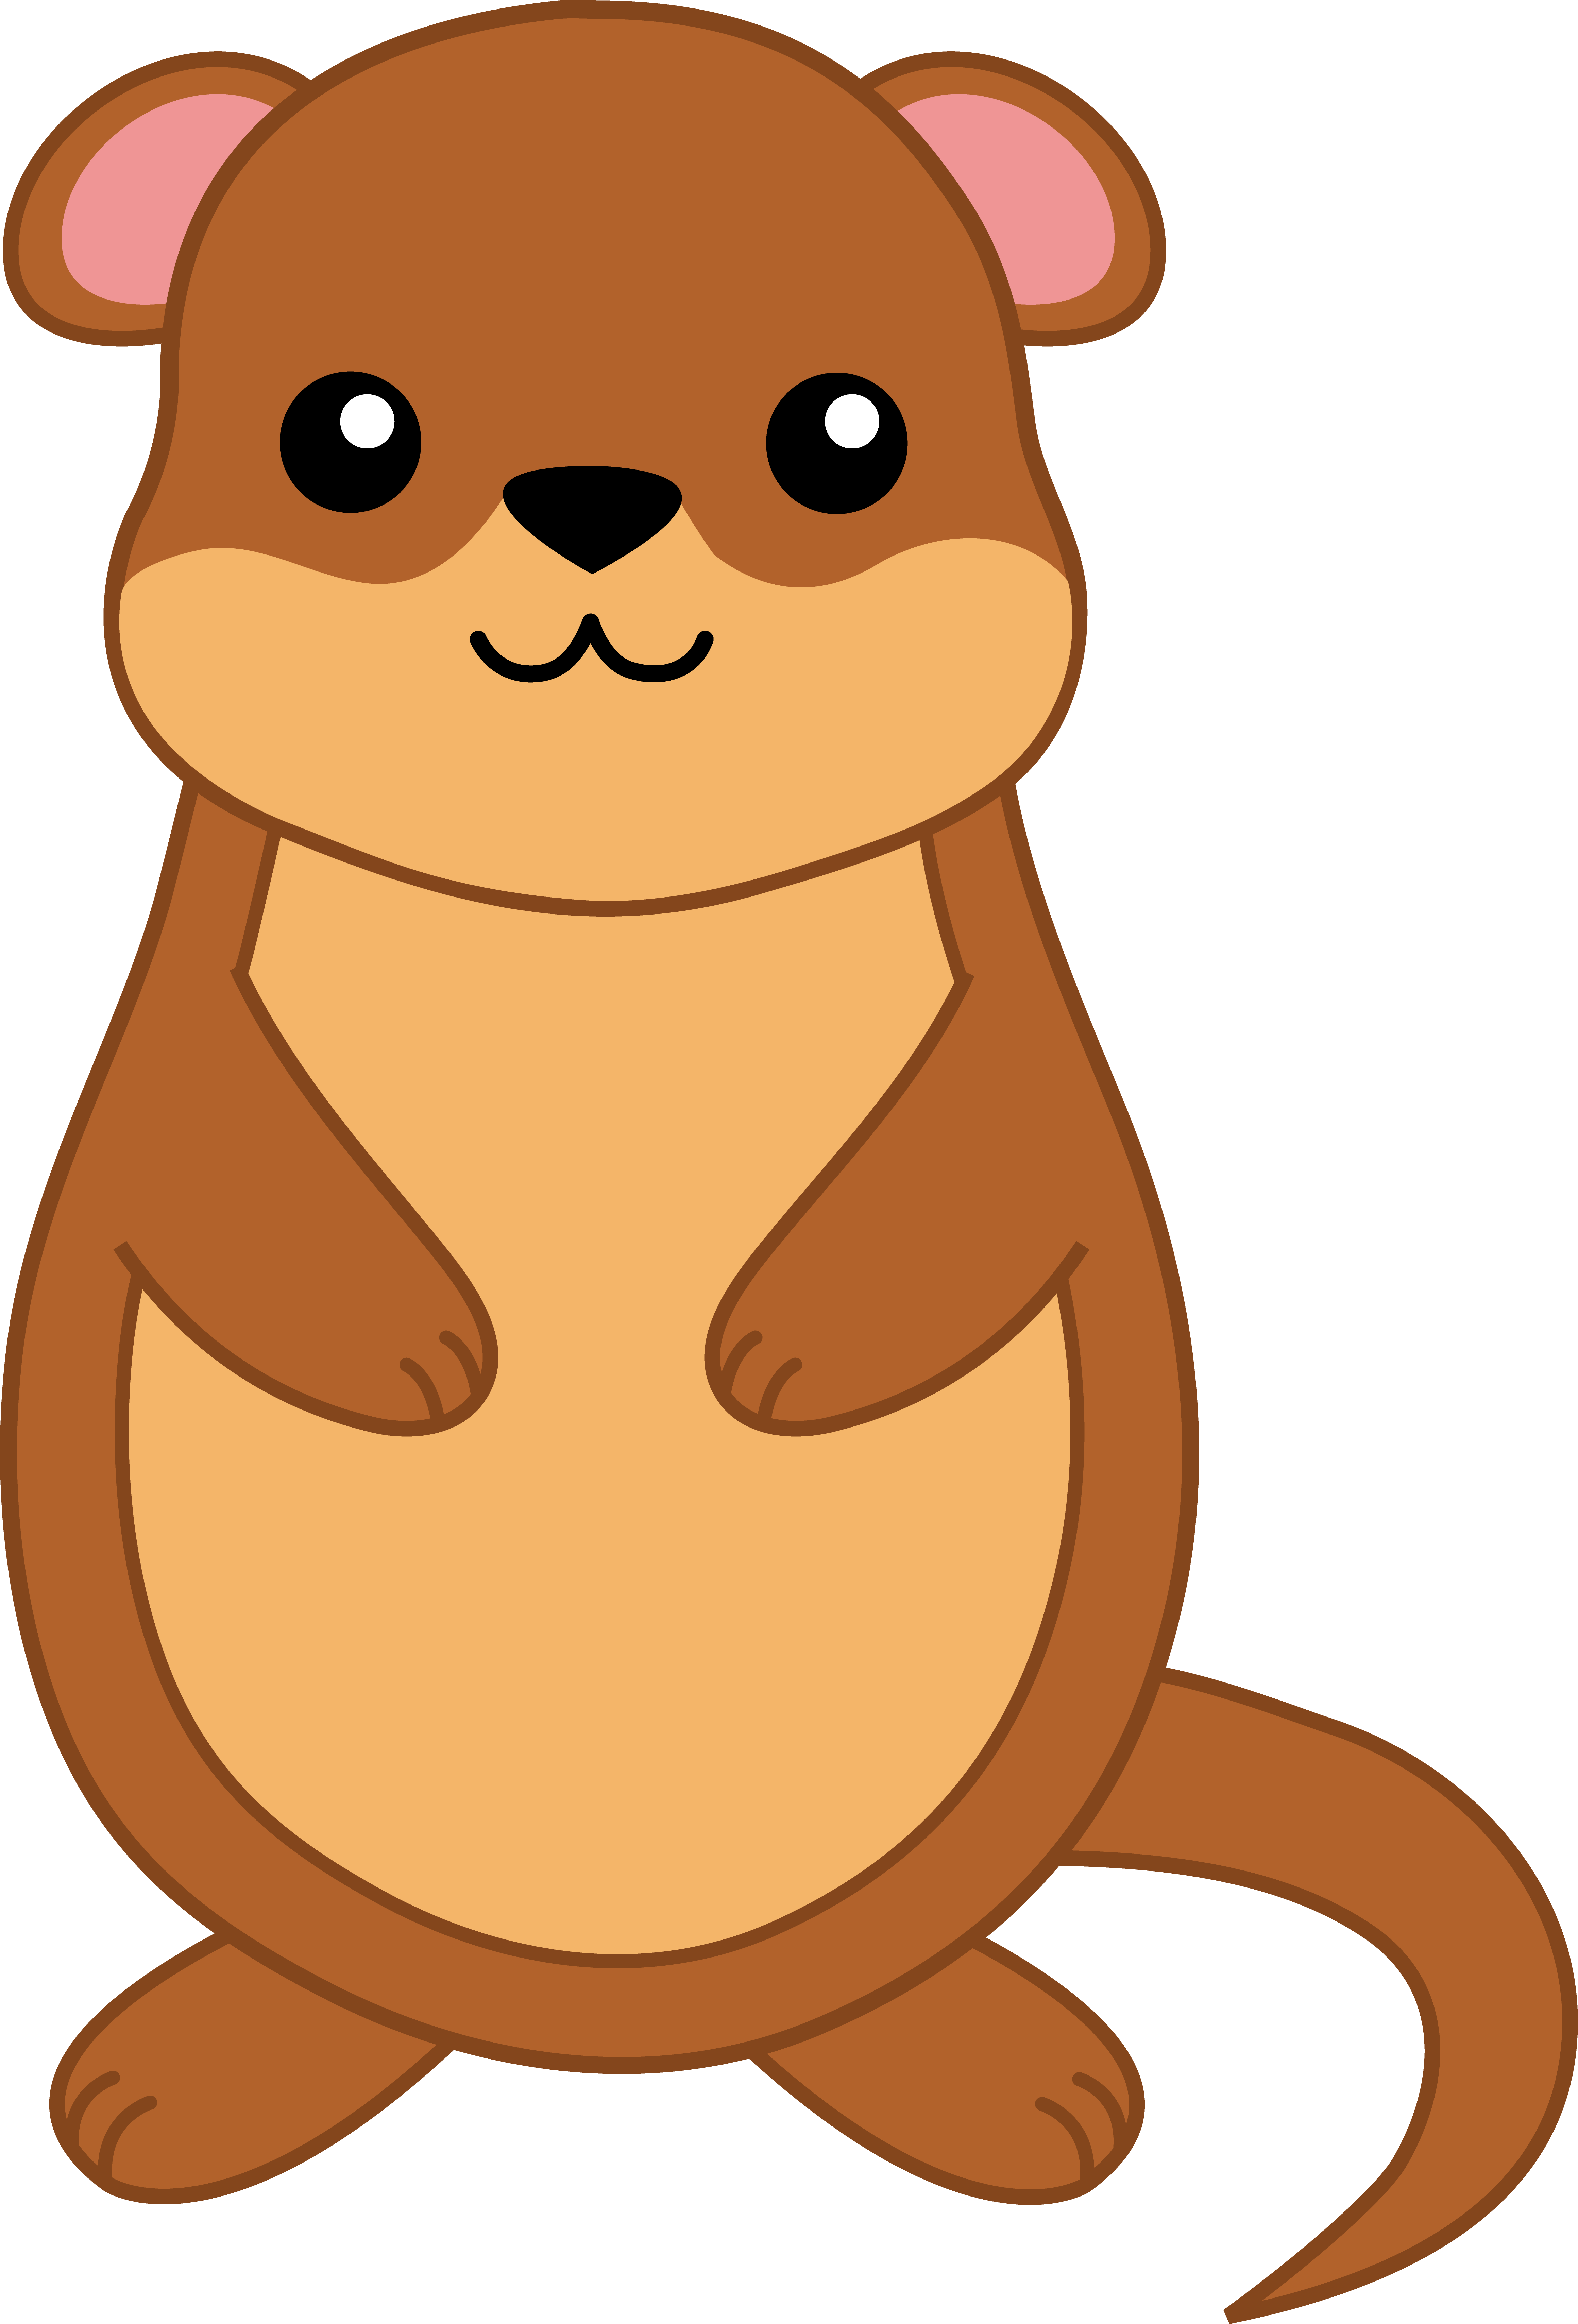 banner royalty free library Groundhog clipart transparent. Treemap